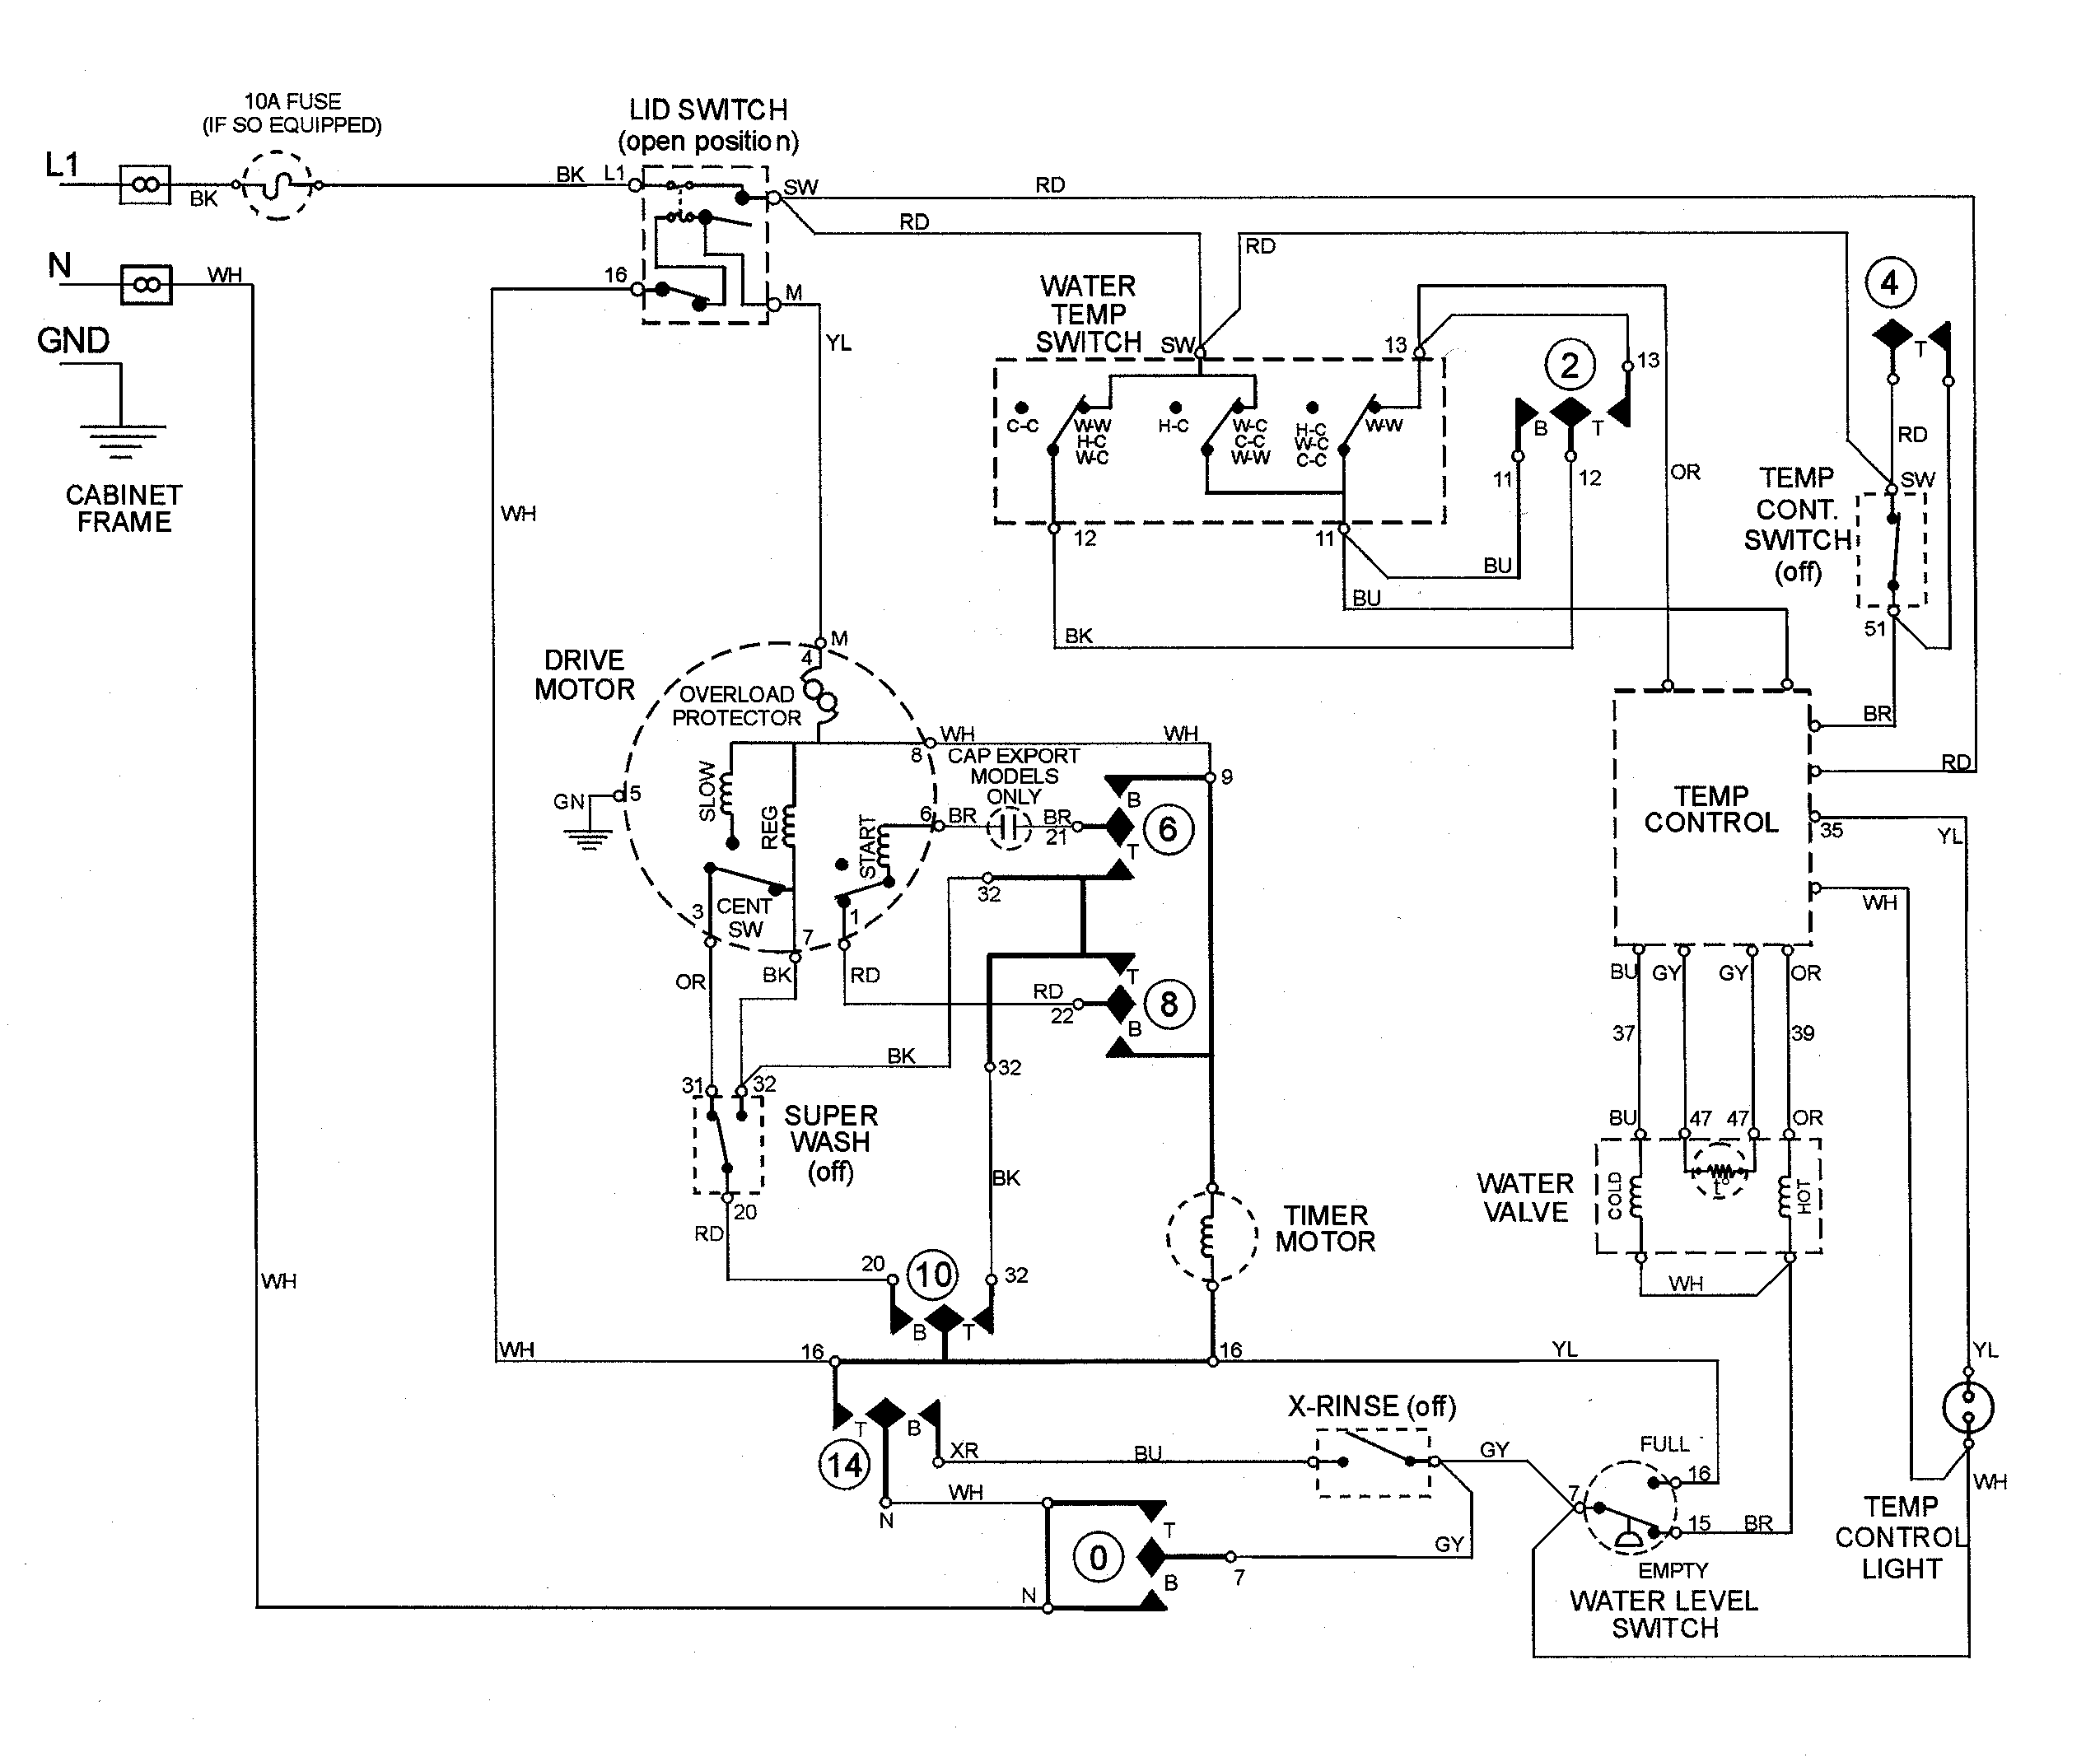 wiring diagram of washing machine motor wiring diagram General Electric Dryer Motor